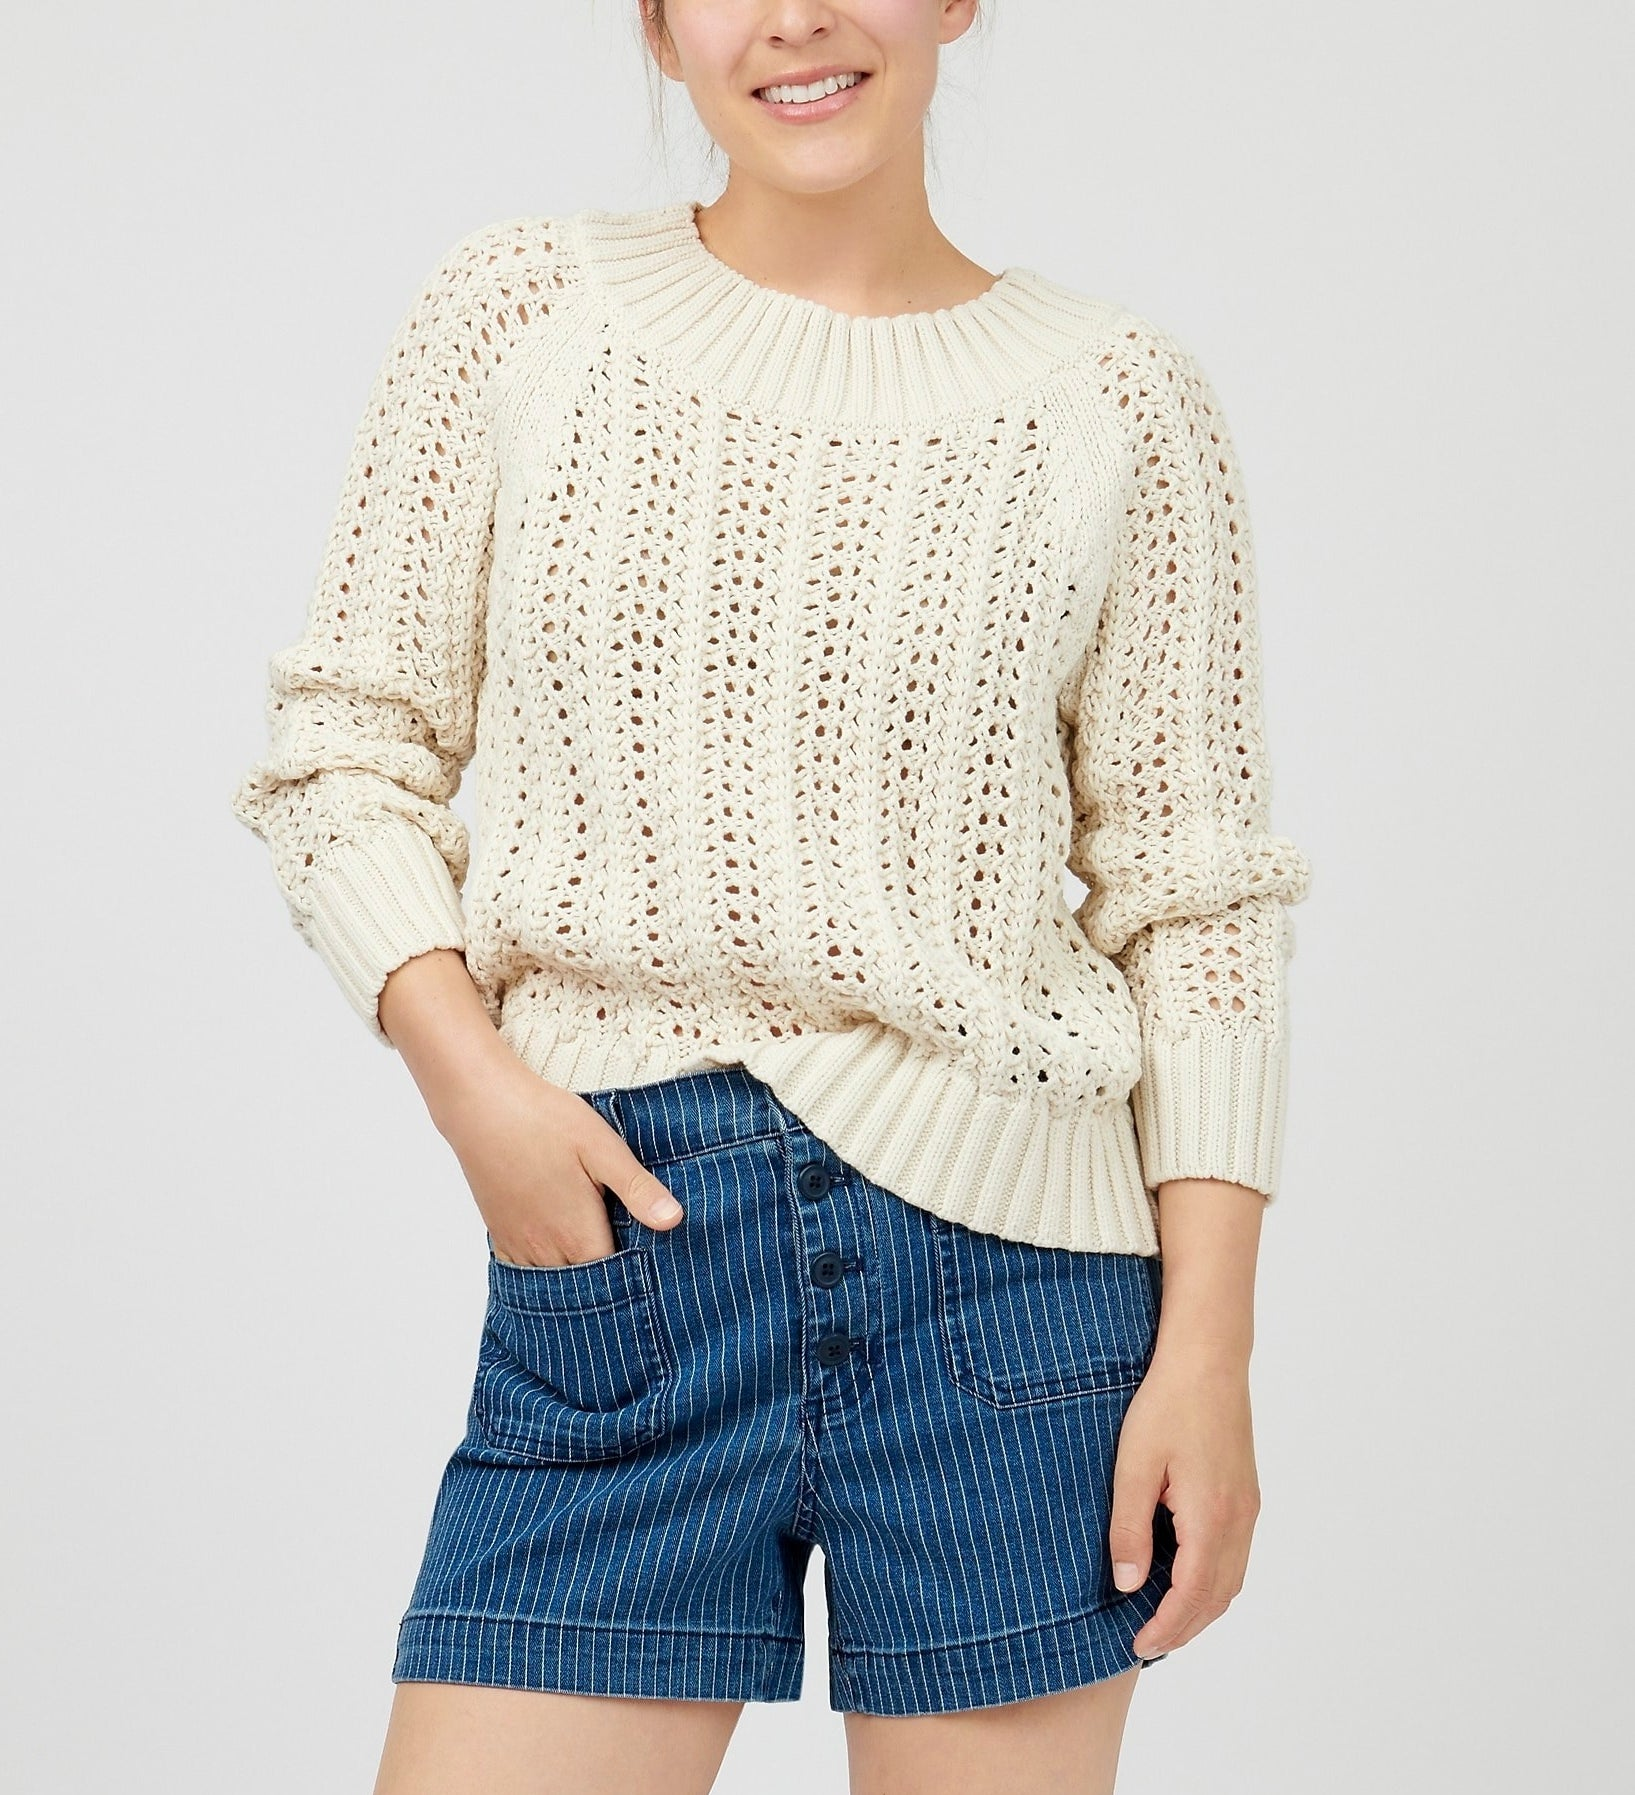 model in beige sweater with wide ribbed hem, neck, and cuffs